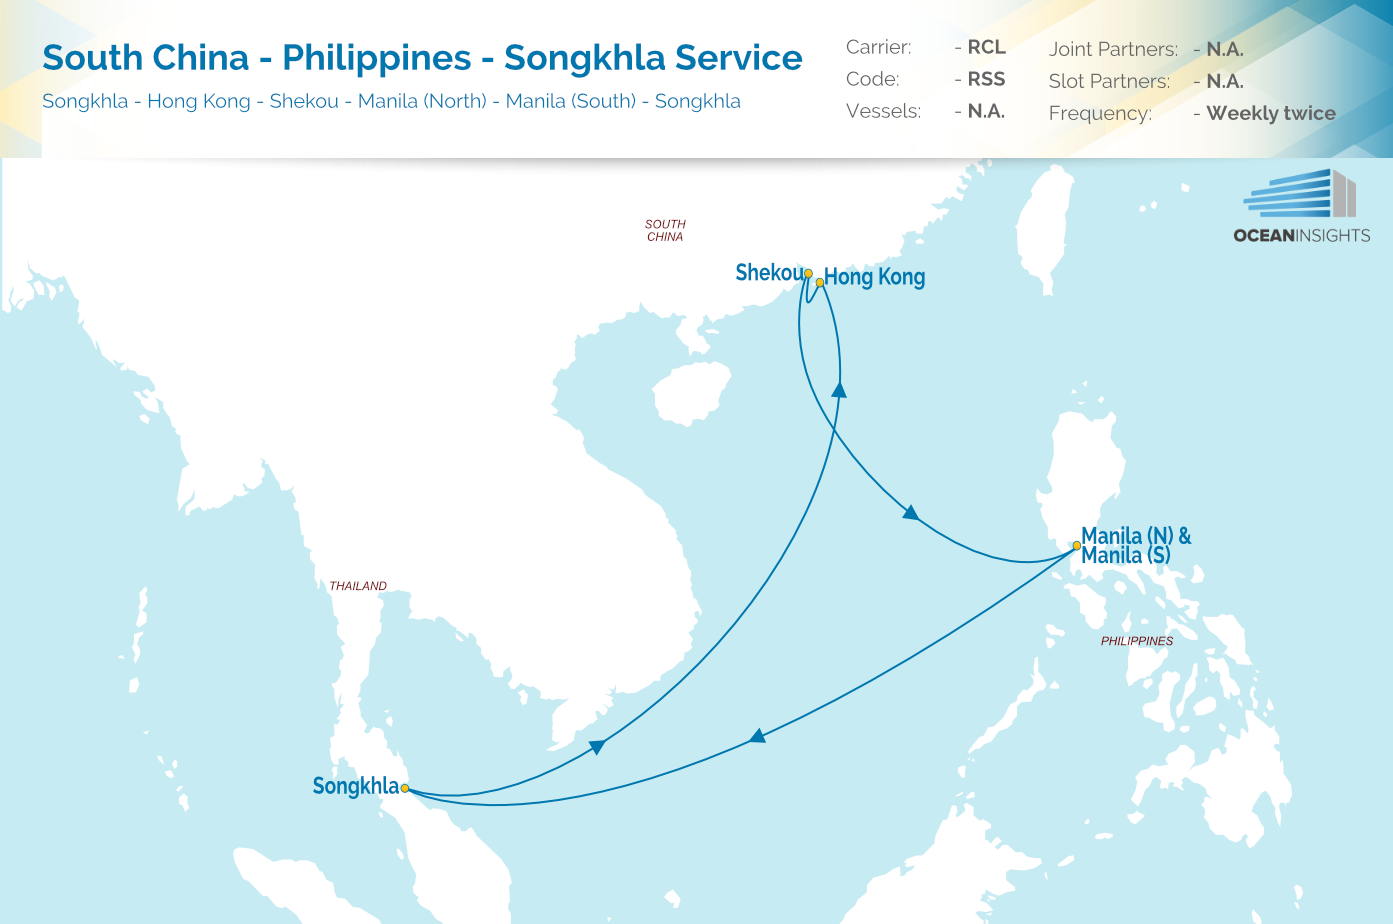 Rcl new south china philippines songkhla service rss launched twice weekly sailings on weekend positions to hong kong and south china with the rss songkhla on sundaymonday and rsk songkhla on saturdaysunday gumiabroncs Gallery